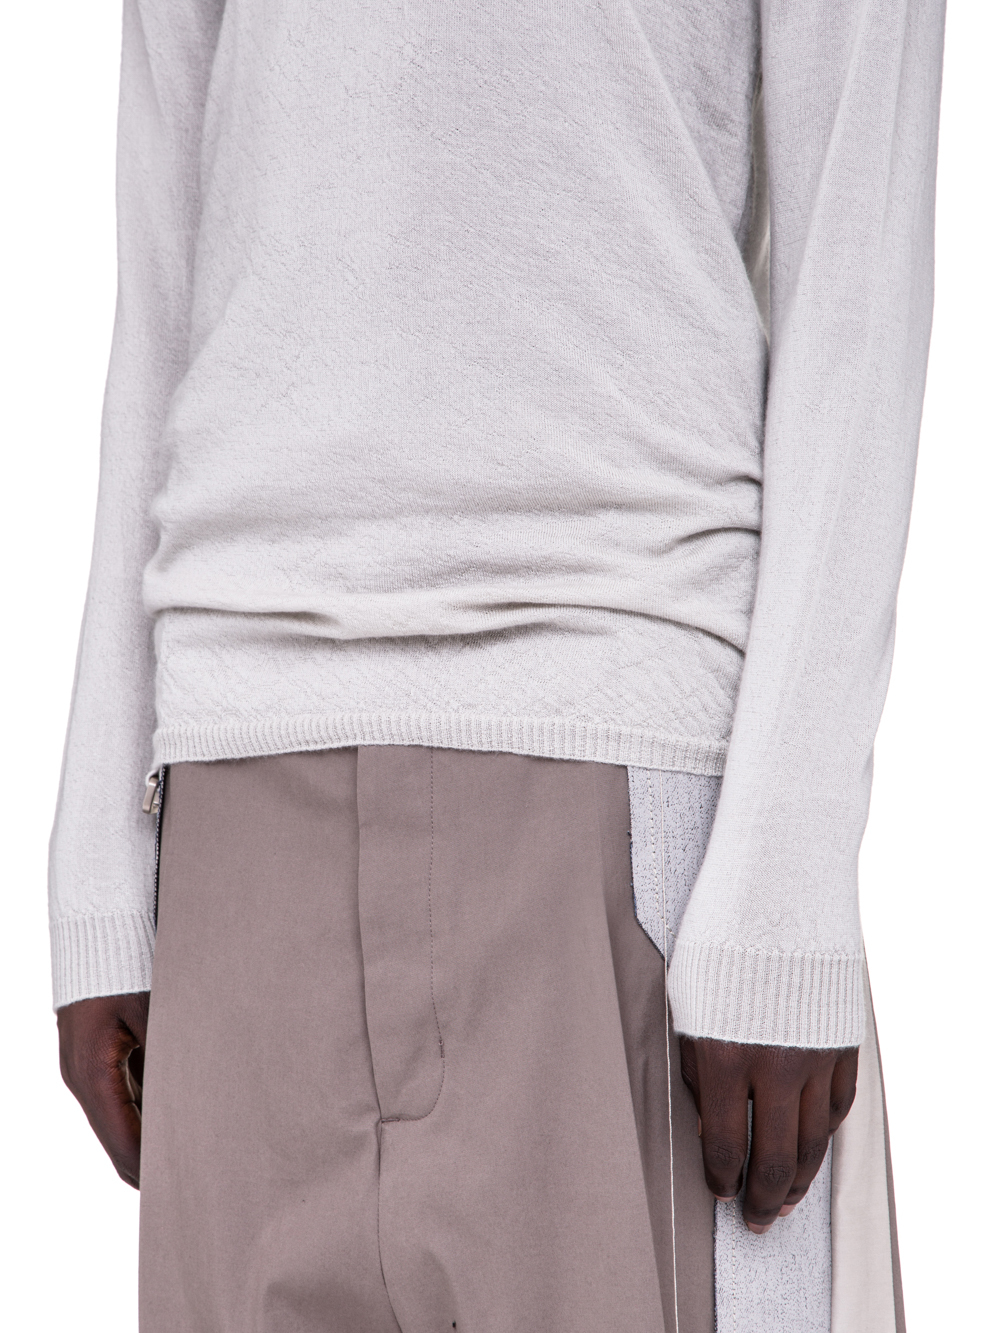 RICK OWENS SS19 BABEL ROUND NECK SWEATER IN OYSTER LIGHT GREY CASHMERE